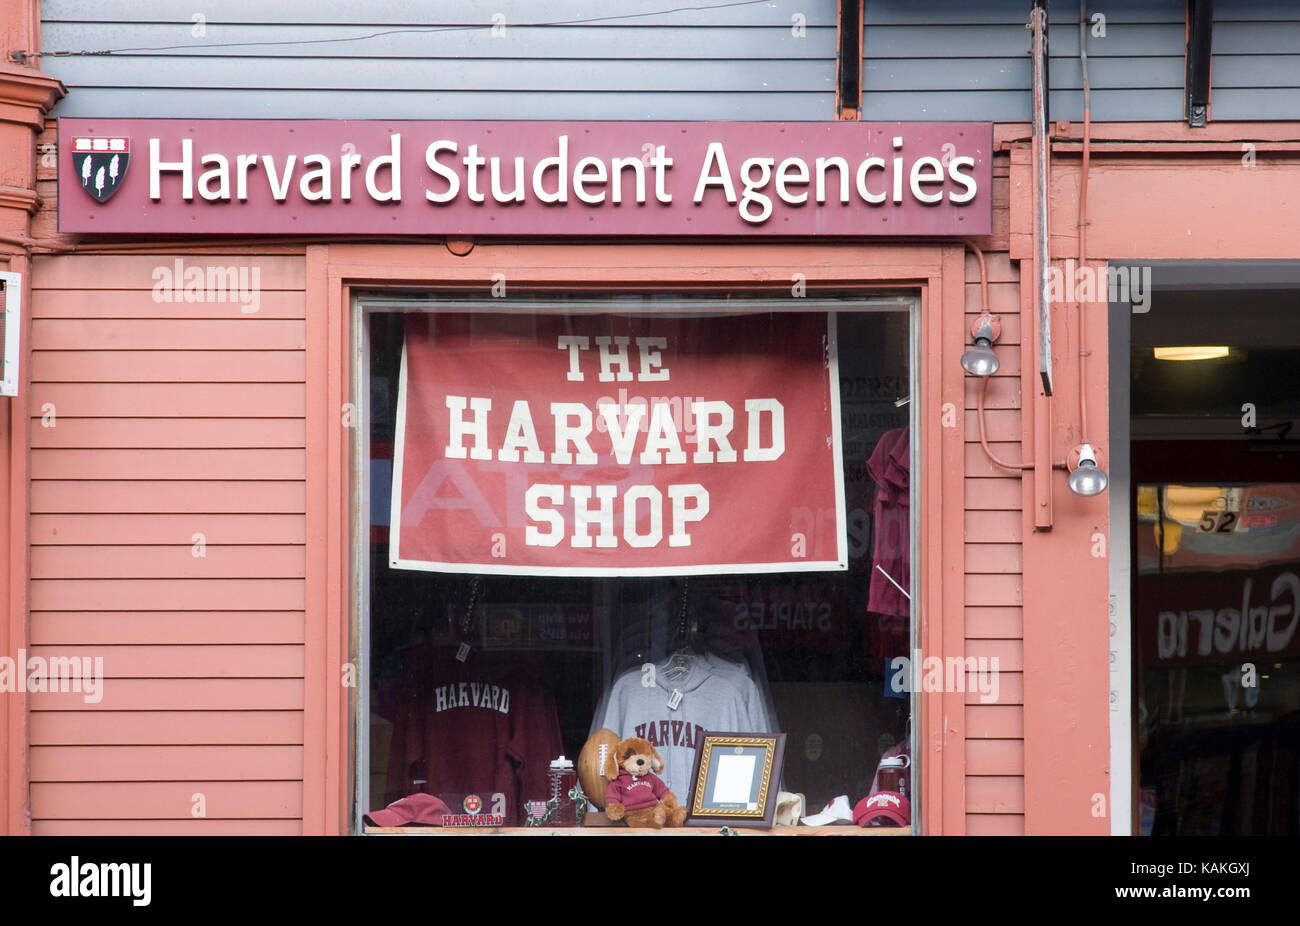 Harvard Student Agencies - Stock Image